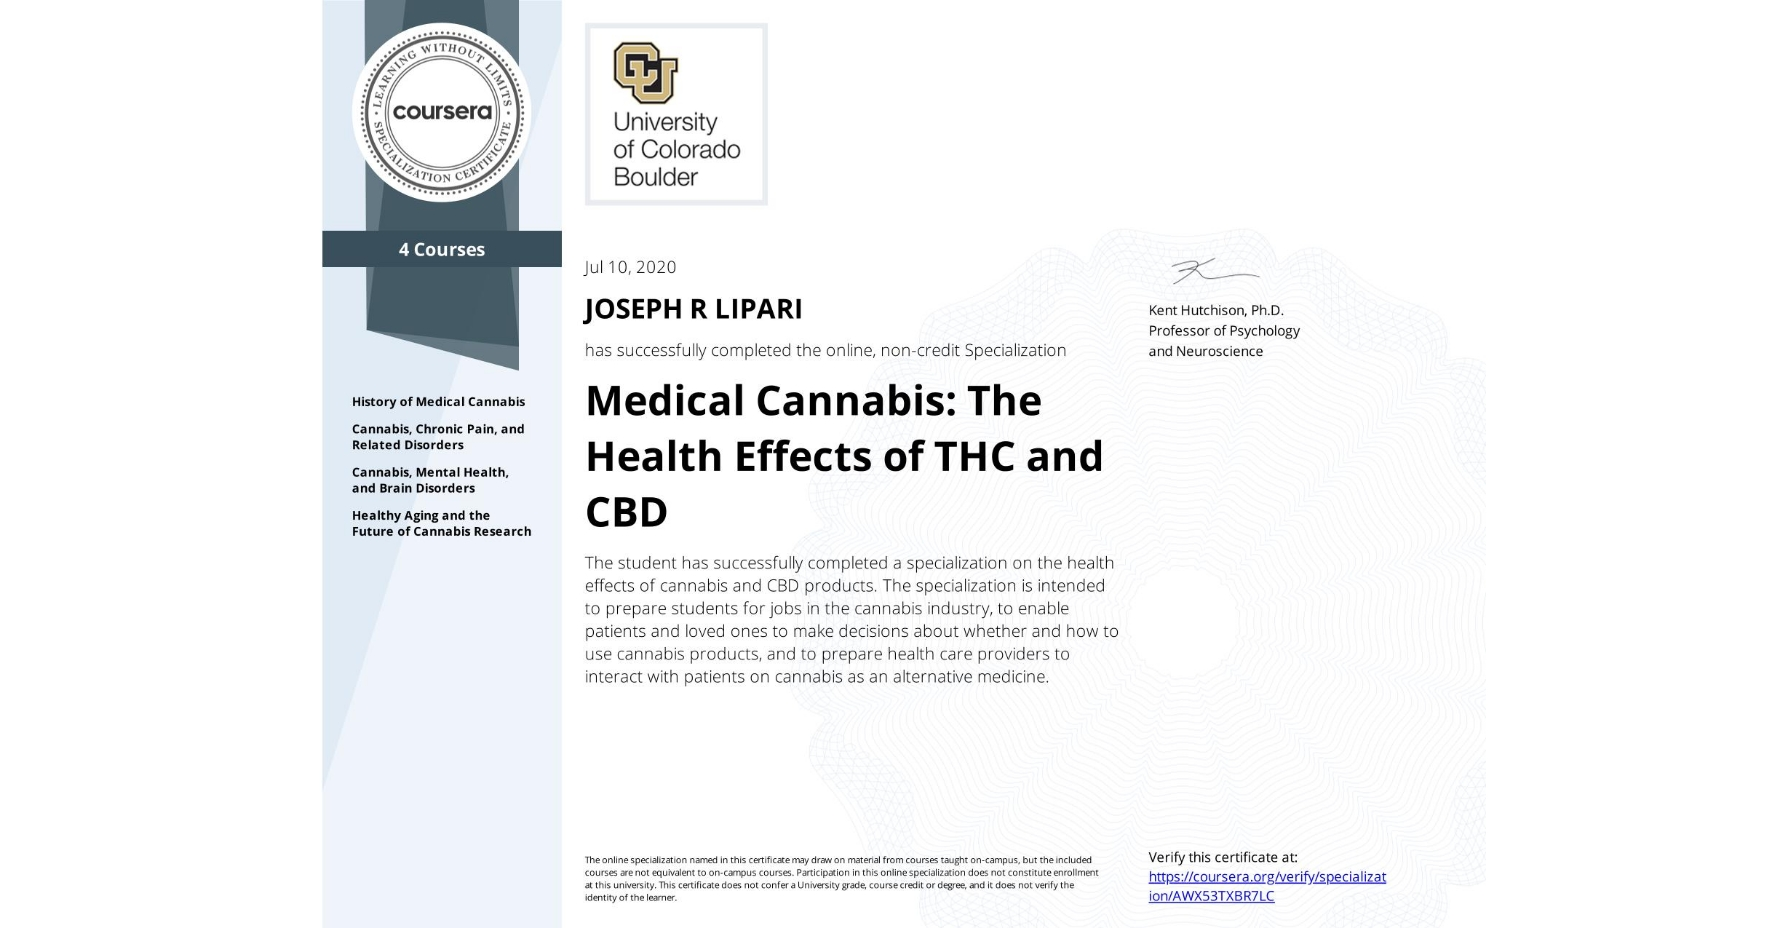 View certificate for JOSEPH R  LIPARI, Medical Cannabis: The Health Effects of THC and CBD, offered through Coursera. The student has successfully completed a specialization on the health effects of cannabis and CBD products. The specialization is intended to prepare students for jobs in the cannabis industry, to enable patients and loved ones to make decisions about whether and how to use cannabis products, and to prepare health care providers to interact with patients on cannabis as an alternative medicine.